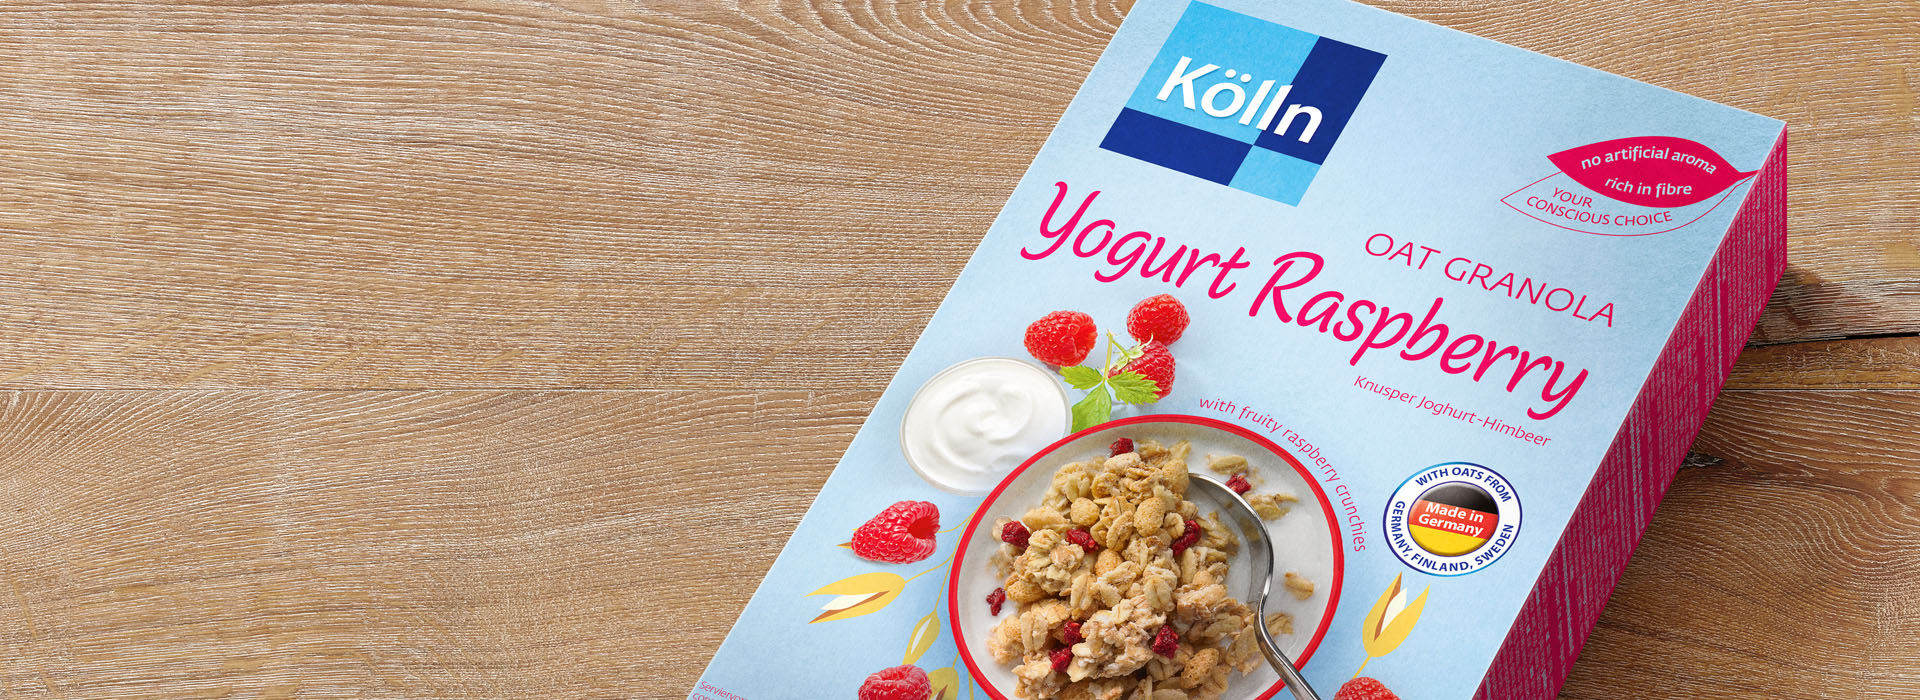 Koelln Oat Granola Yogurt Raspberry Pack on Table